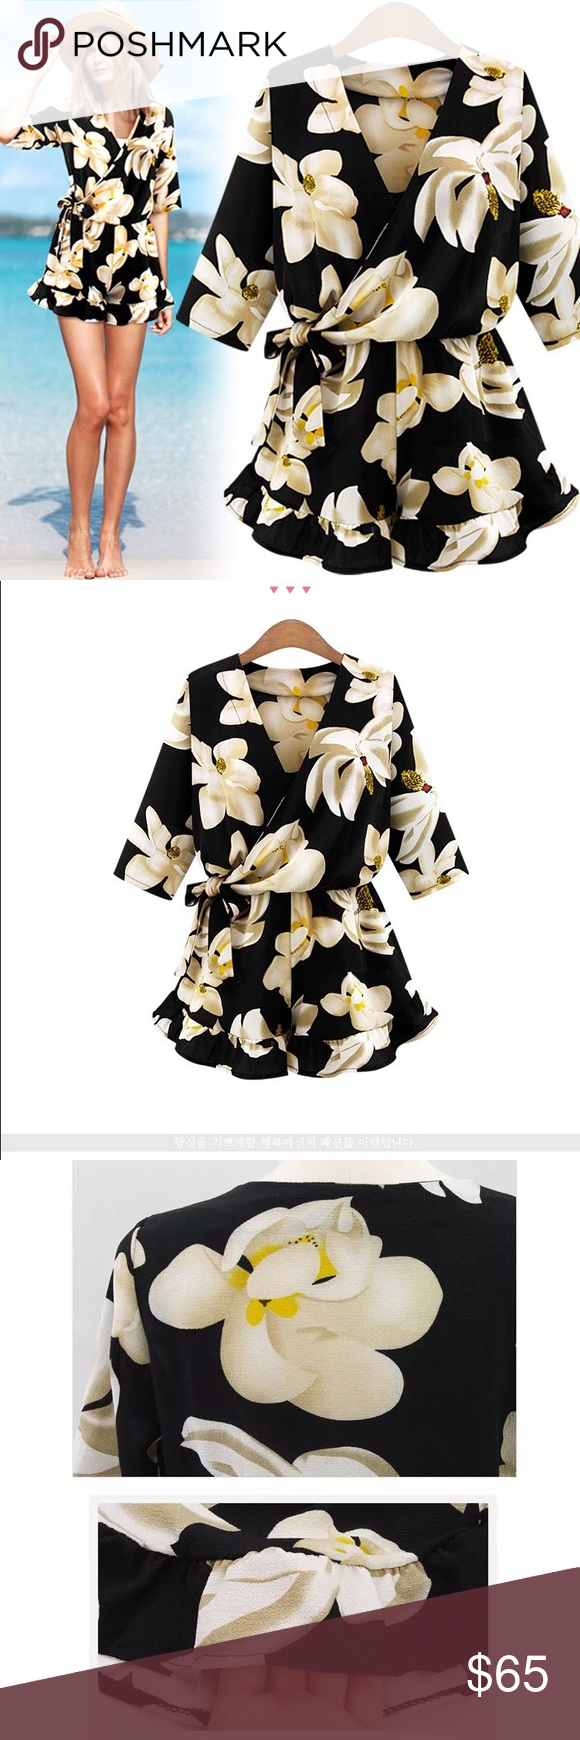 Black ruffled floral romper ☀️ This elegant romper is perfect to be worn outside in the sunlight, preferably on the beach